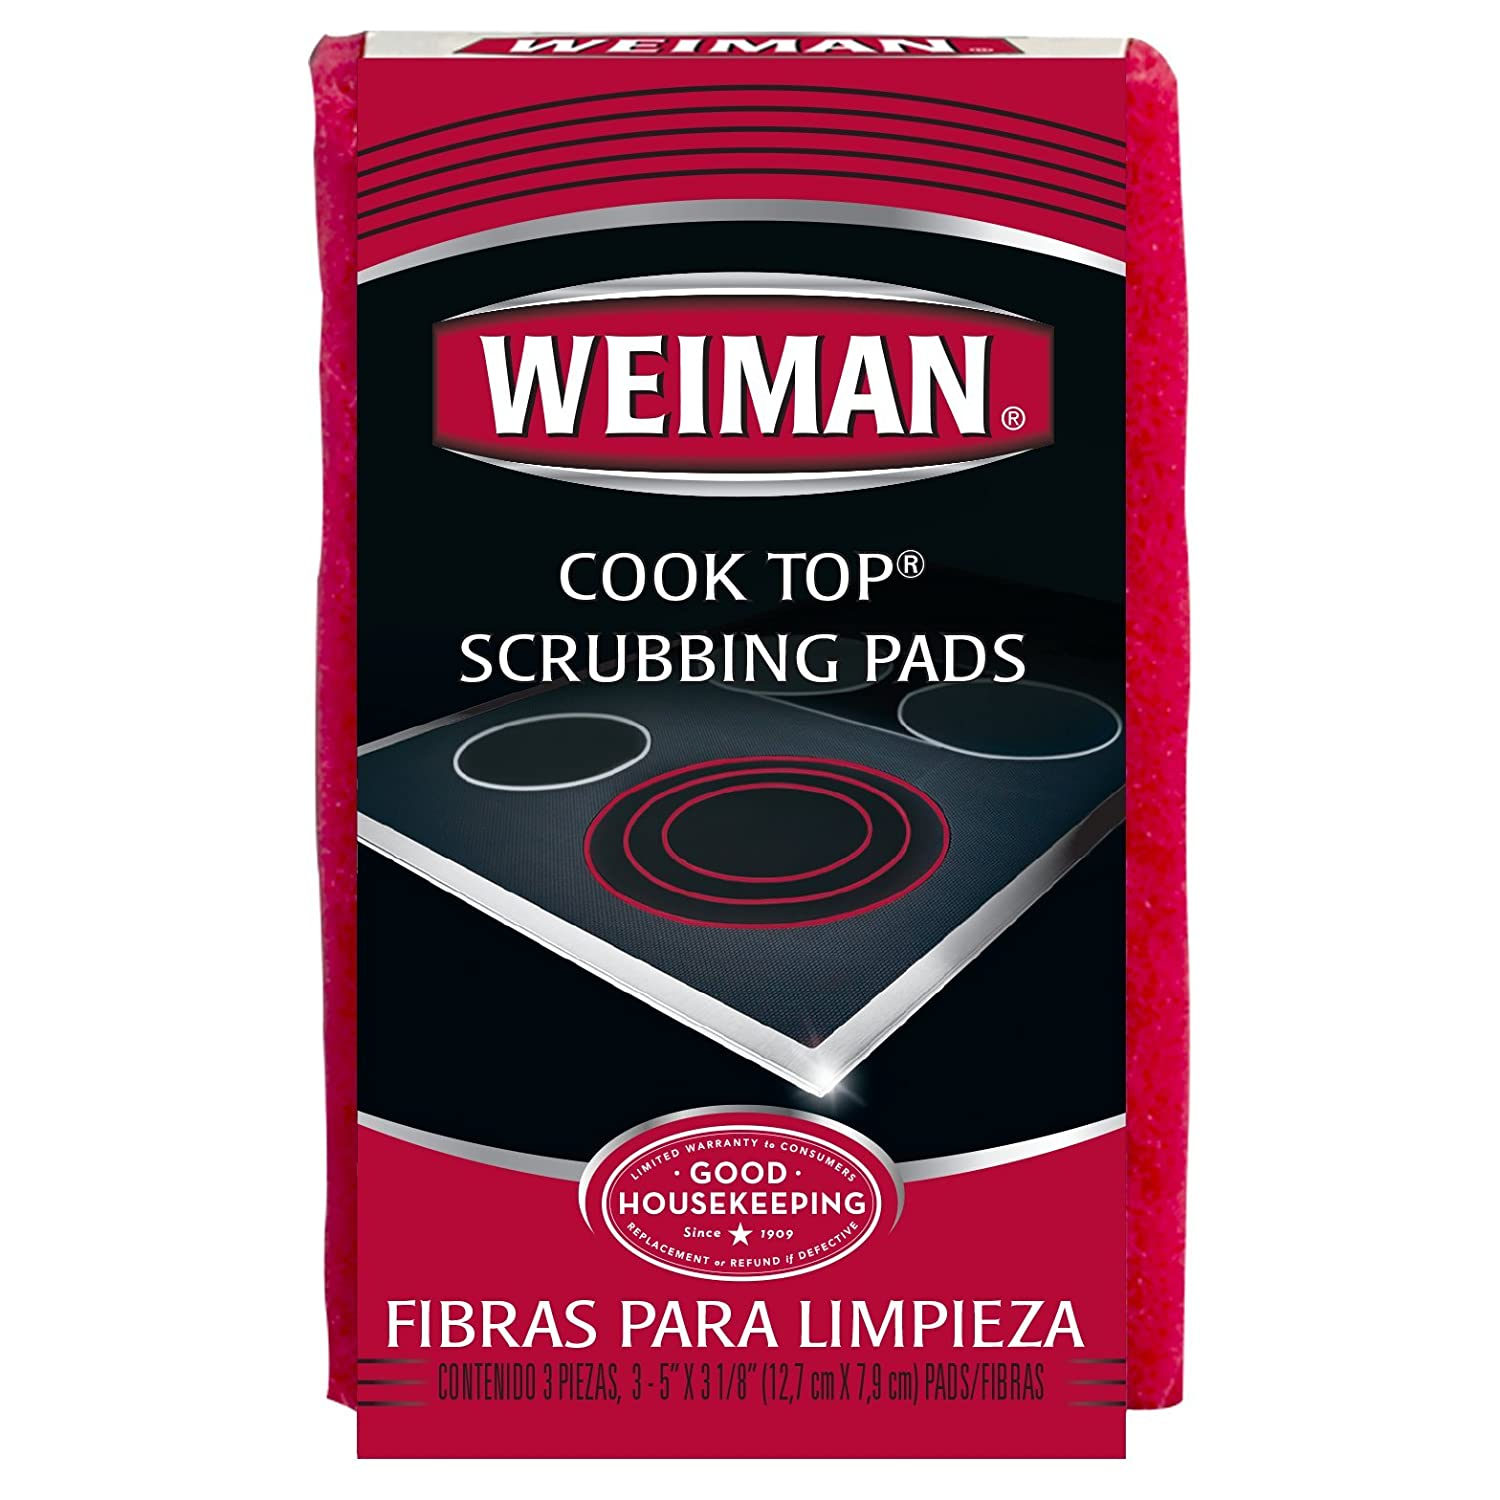 Weiman Cook Top Scrubbing Pads, 3 Count, 2 Pack Cuts Through the Toughest Stains - Scrubbing Pads Carefully Wipe Away Residue WMN-002B